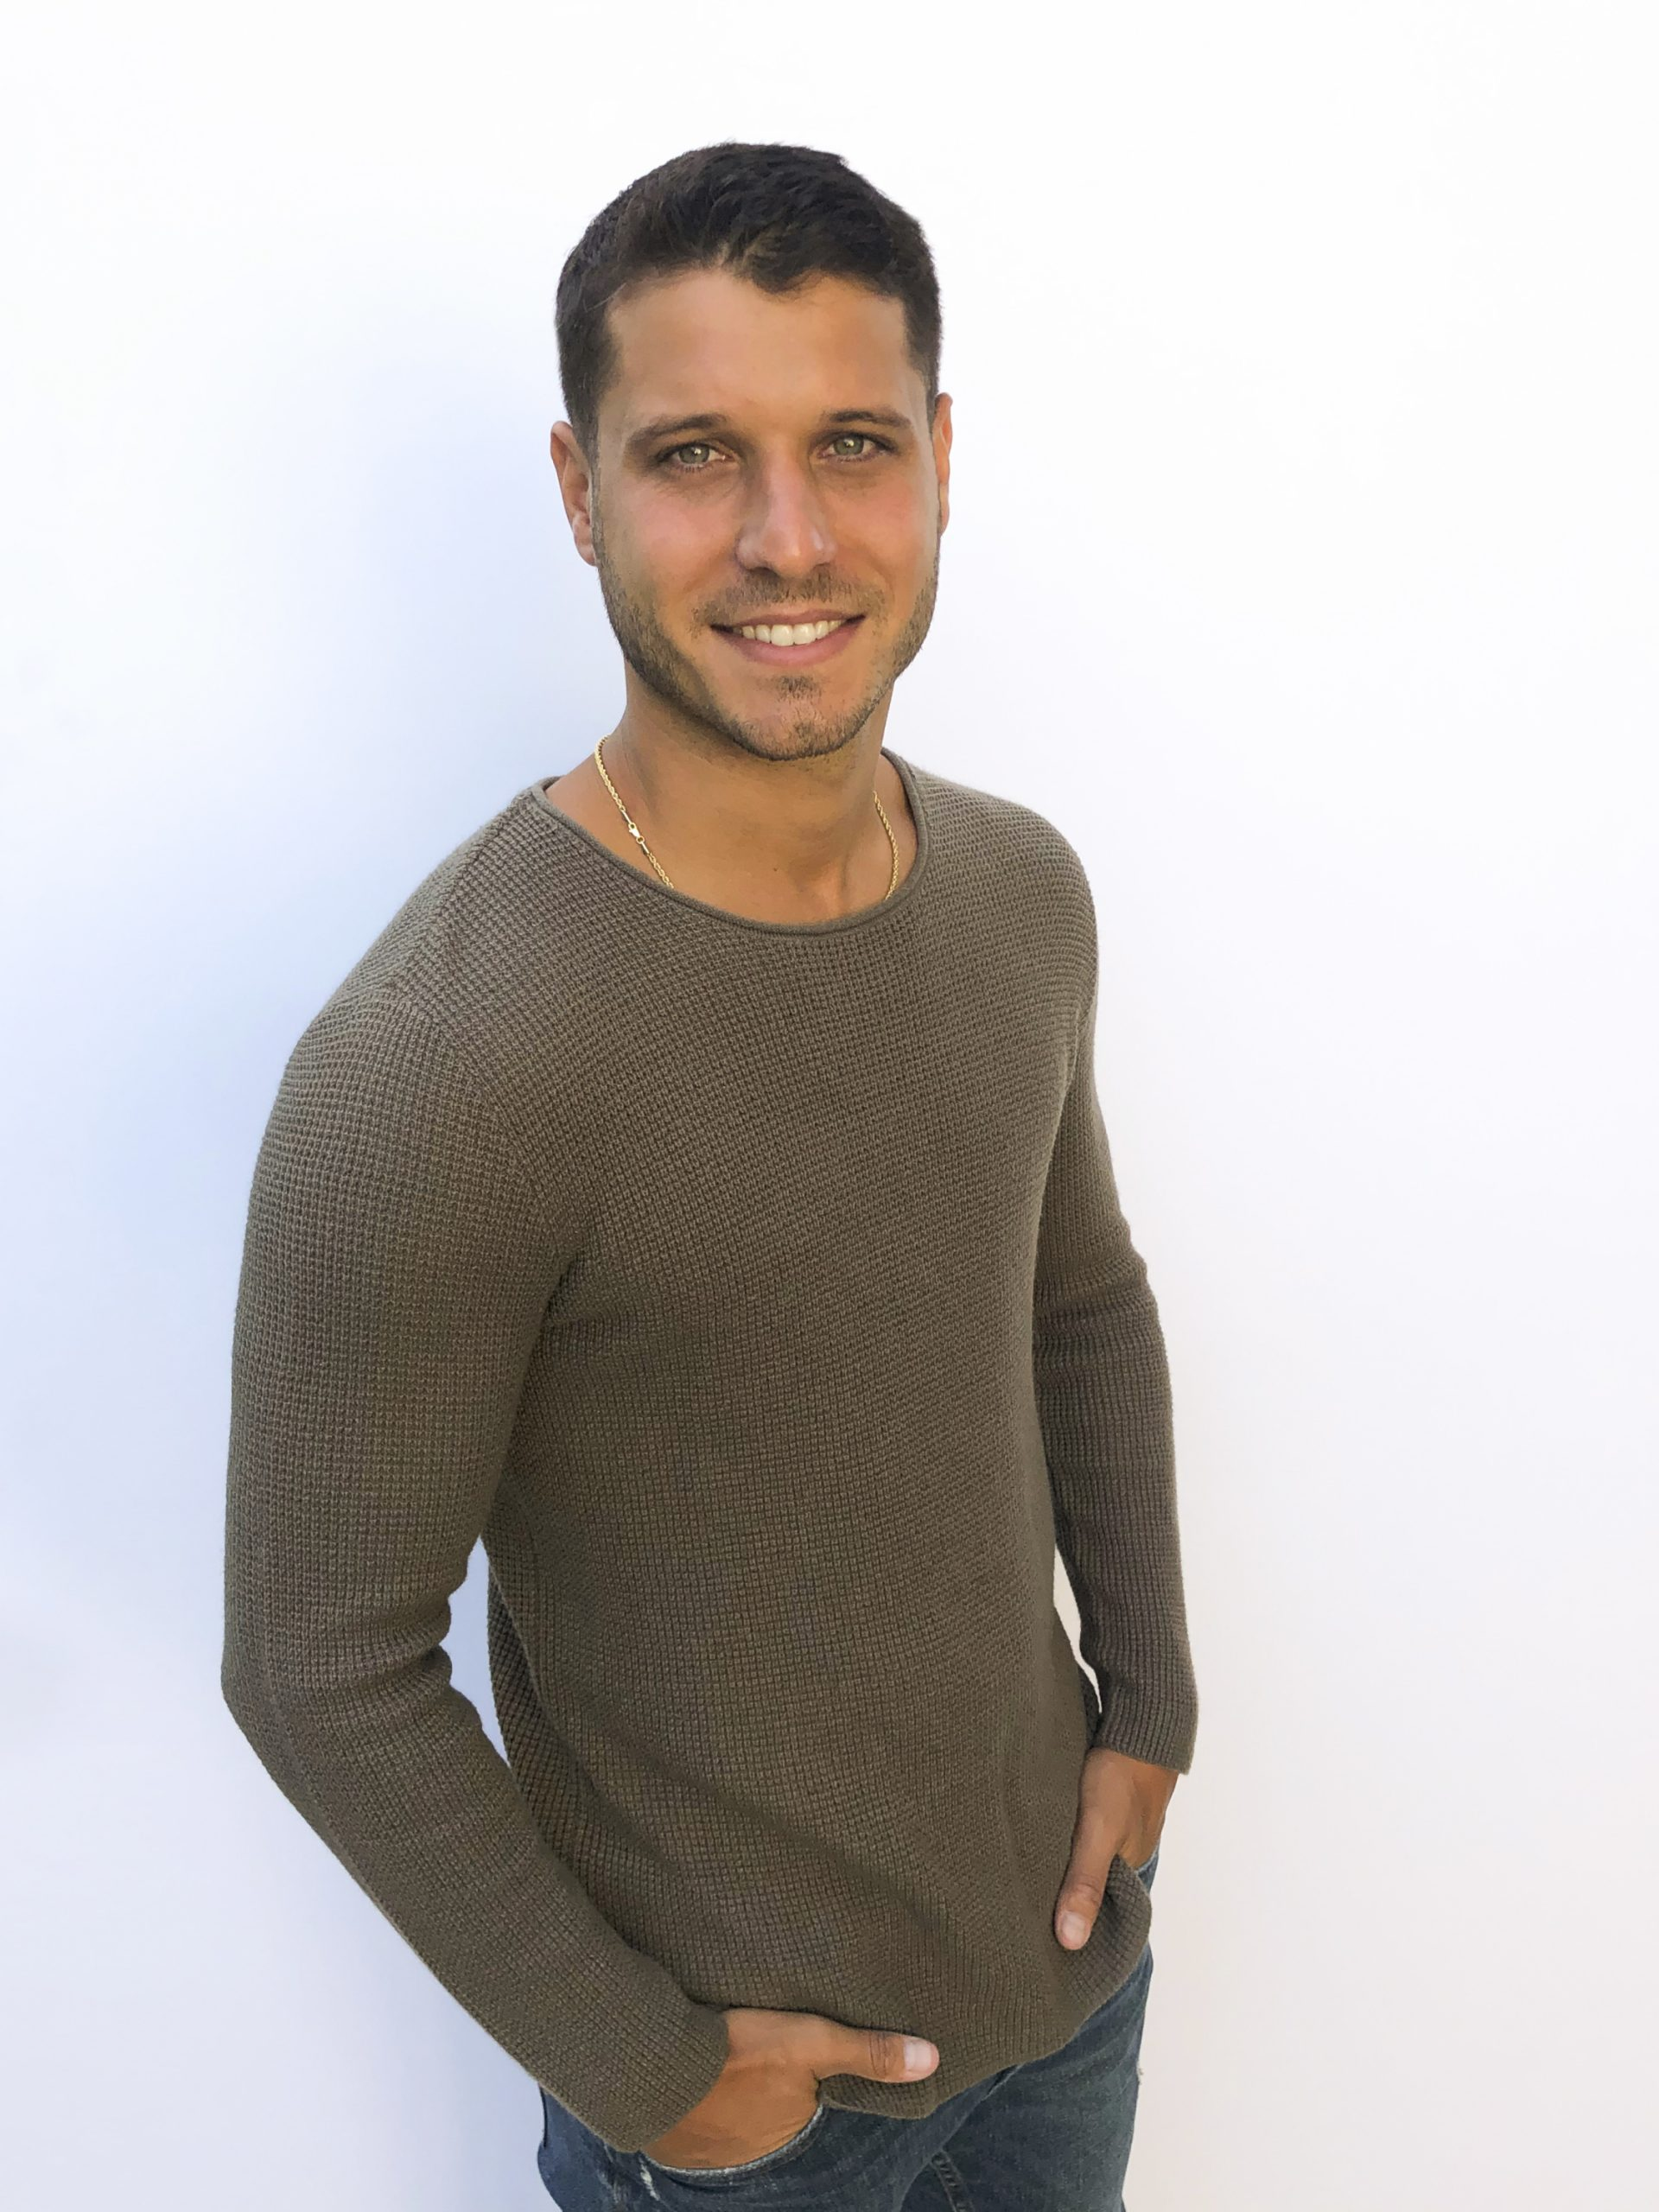 Cody Calafiore from Big Brother Season 16